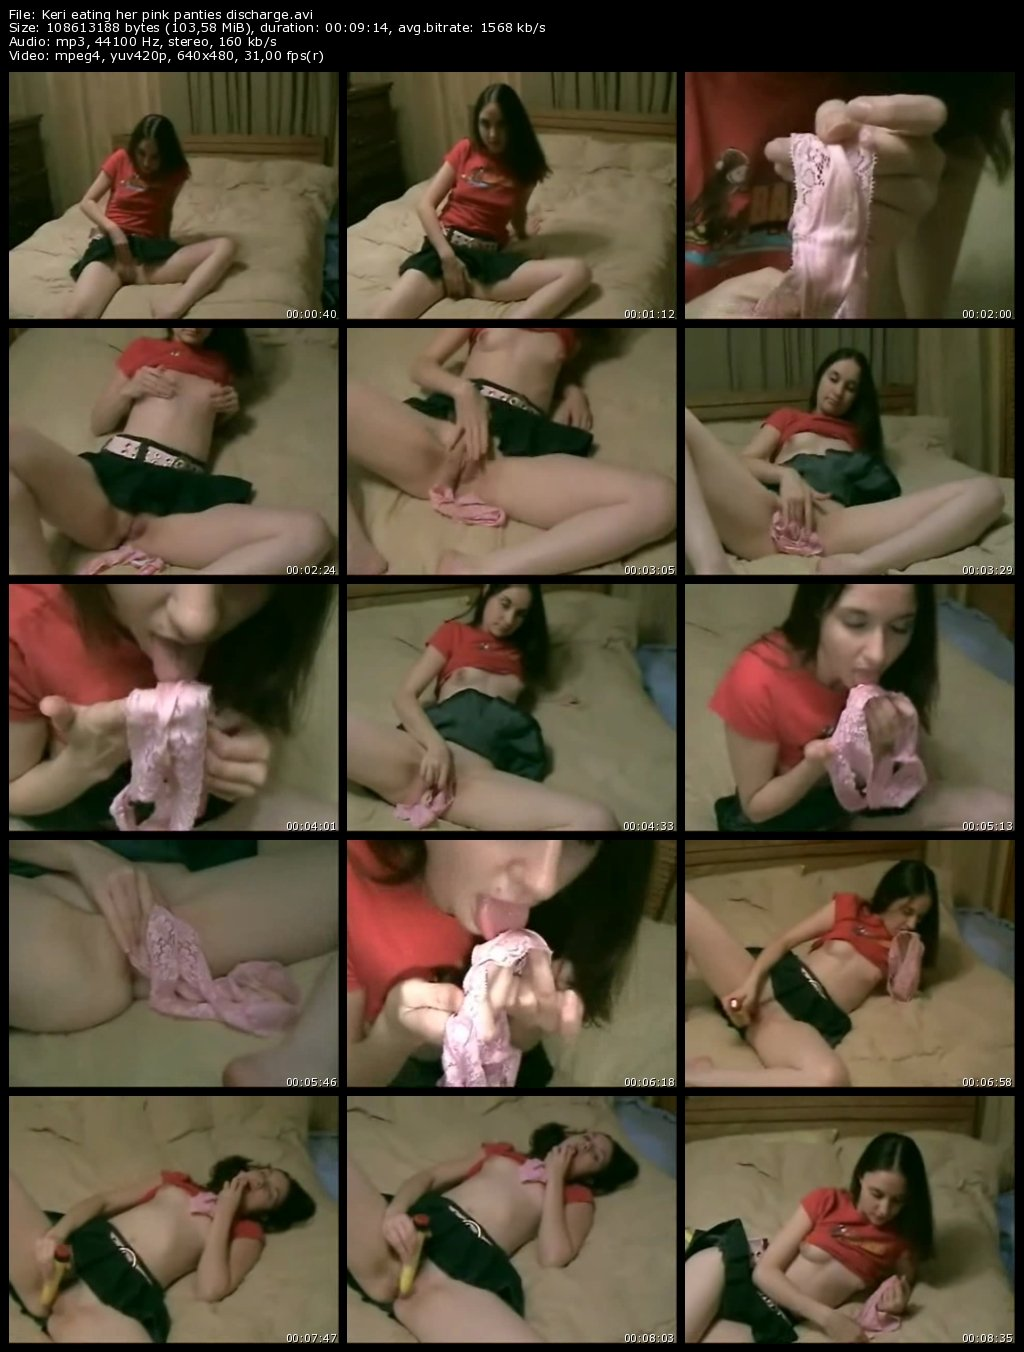 Amateur panty discharge eating 4